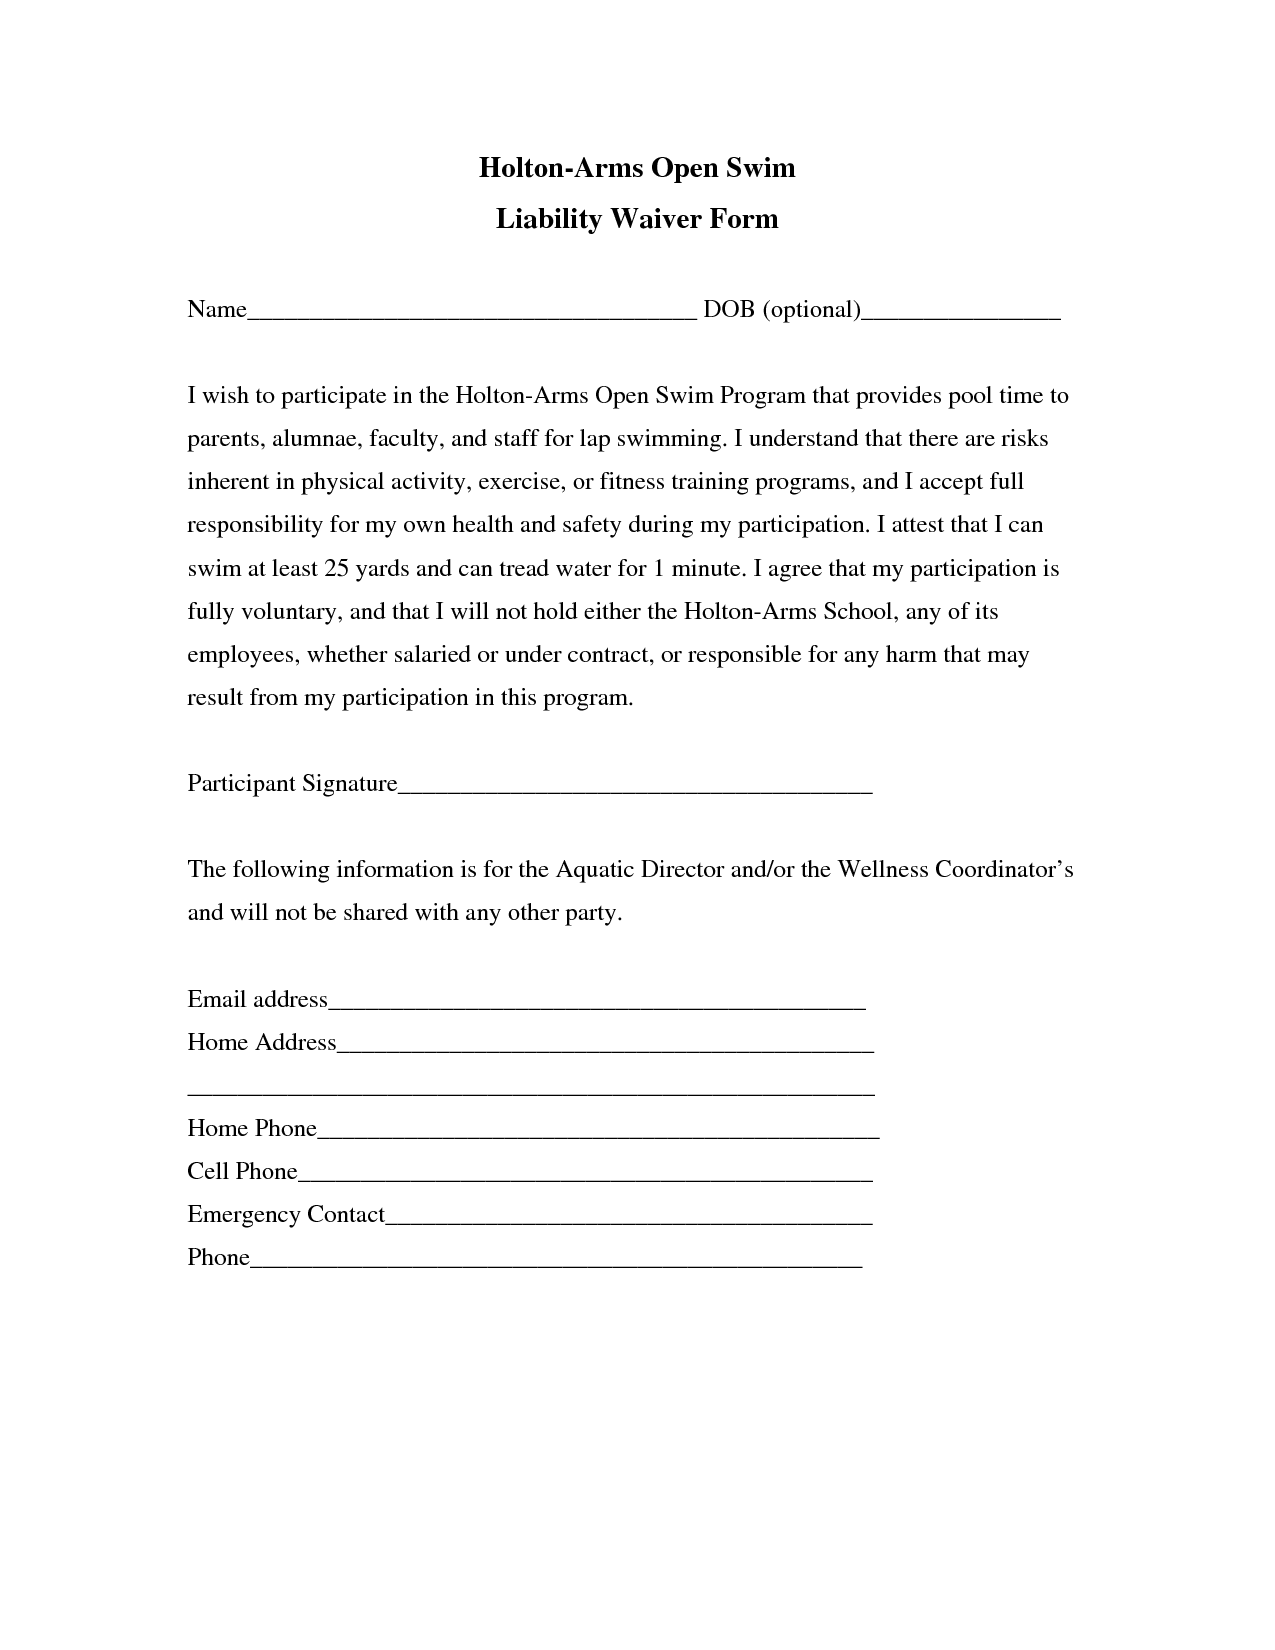 Liability insurance liability insurance waiver template for Release from liability form template